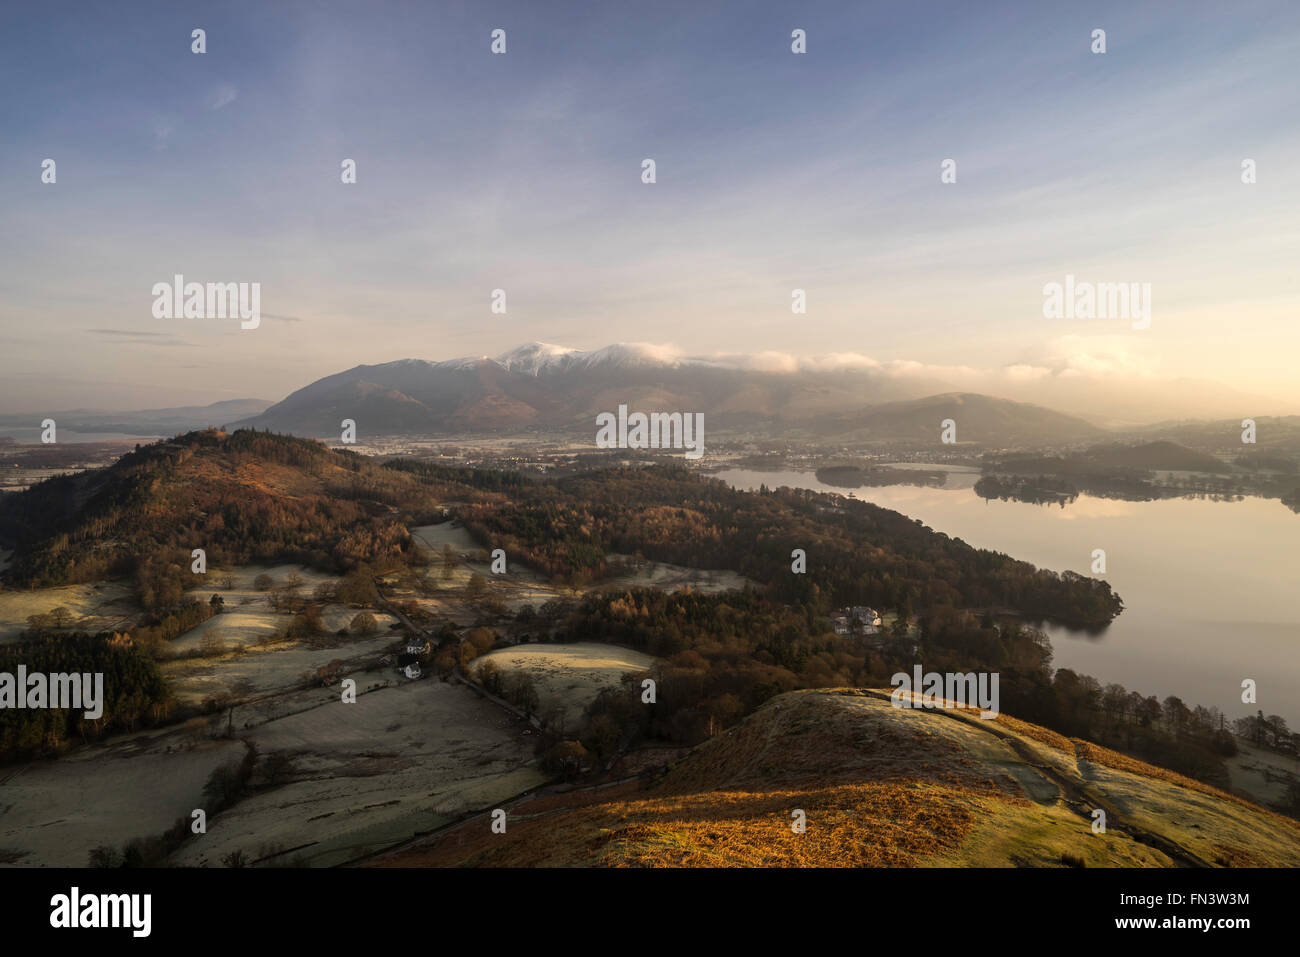 Derwentwater view from Catbells, Lake District, Cumbria, England, UK - Stock Image